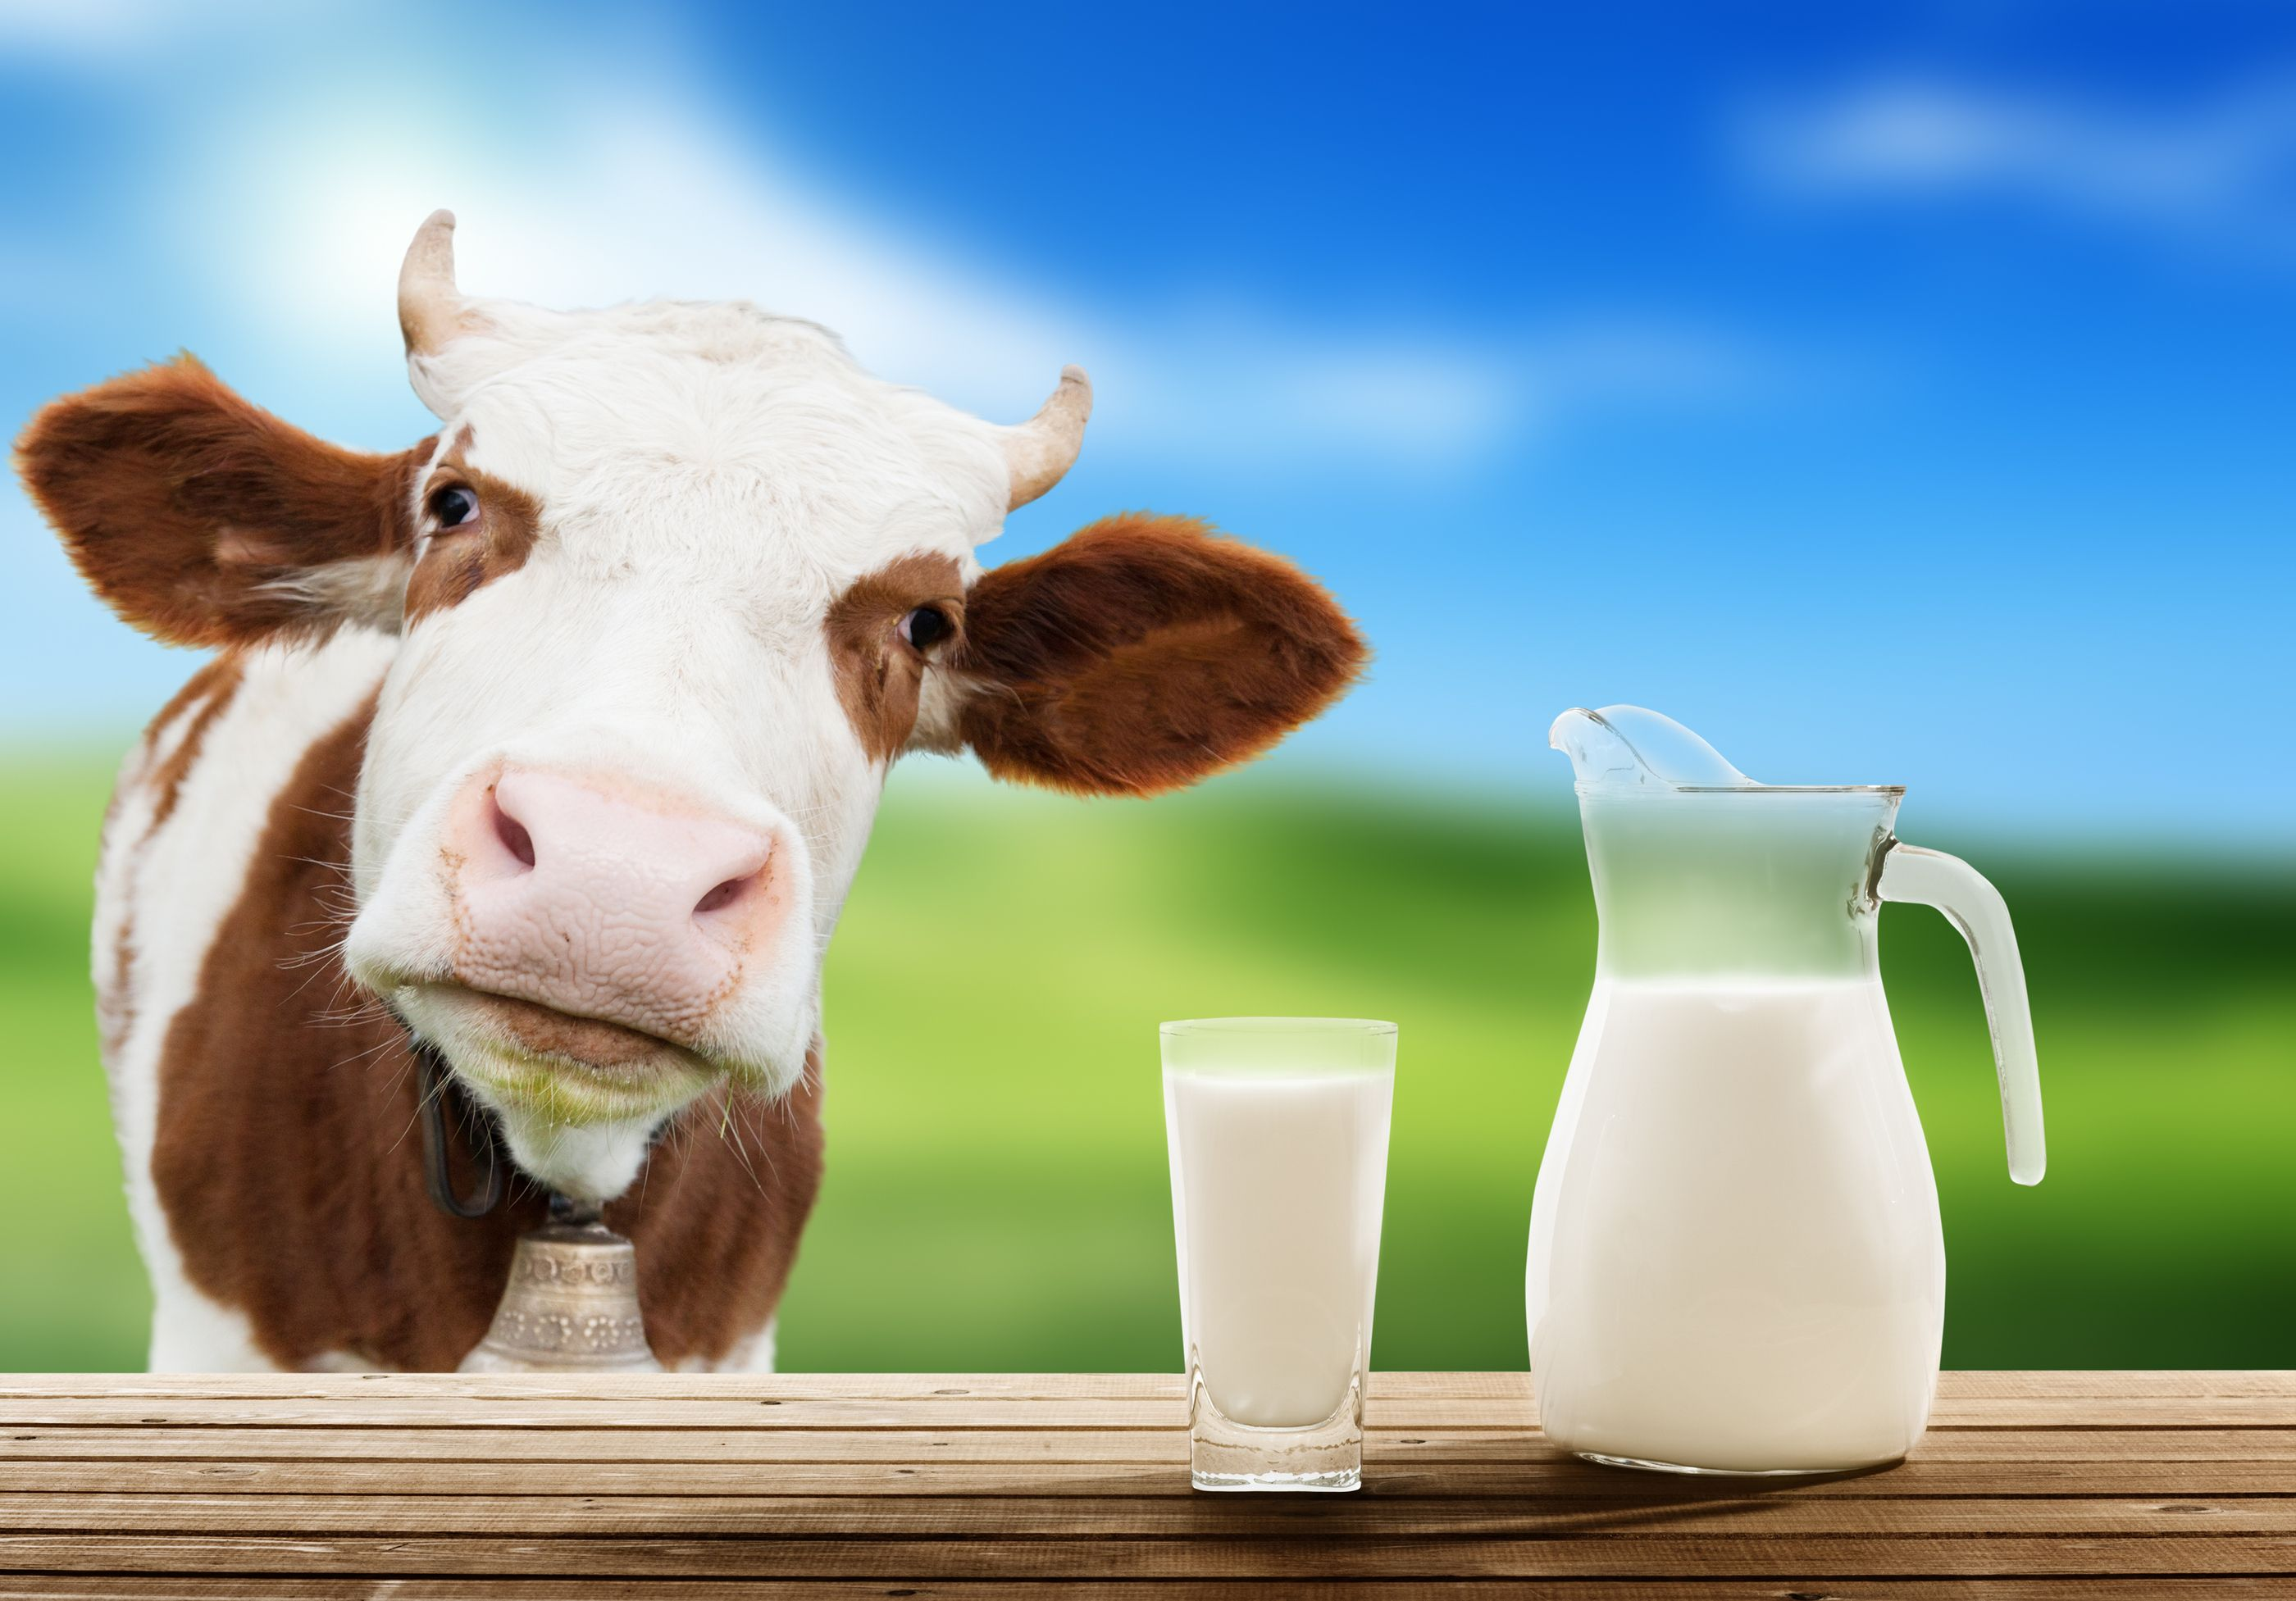 5 Diseases Related to Cow's Milk | Cow's Milk | Cow's milk diseases | Raw  milk, Milk cow, Cow's milk